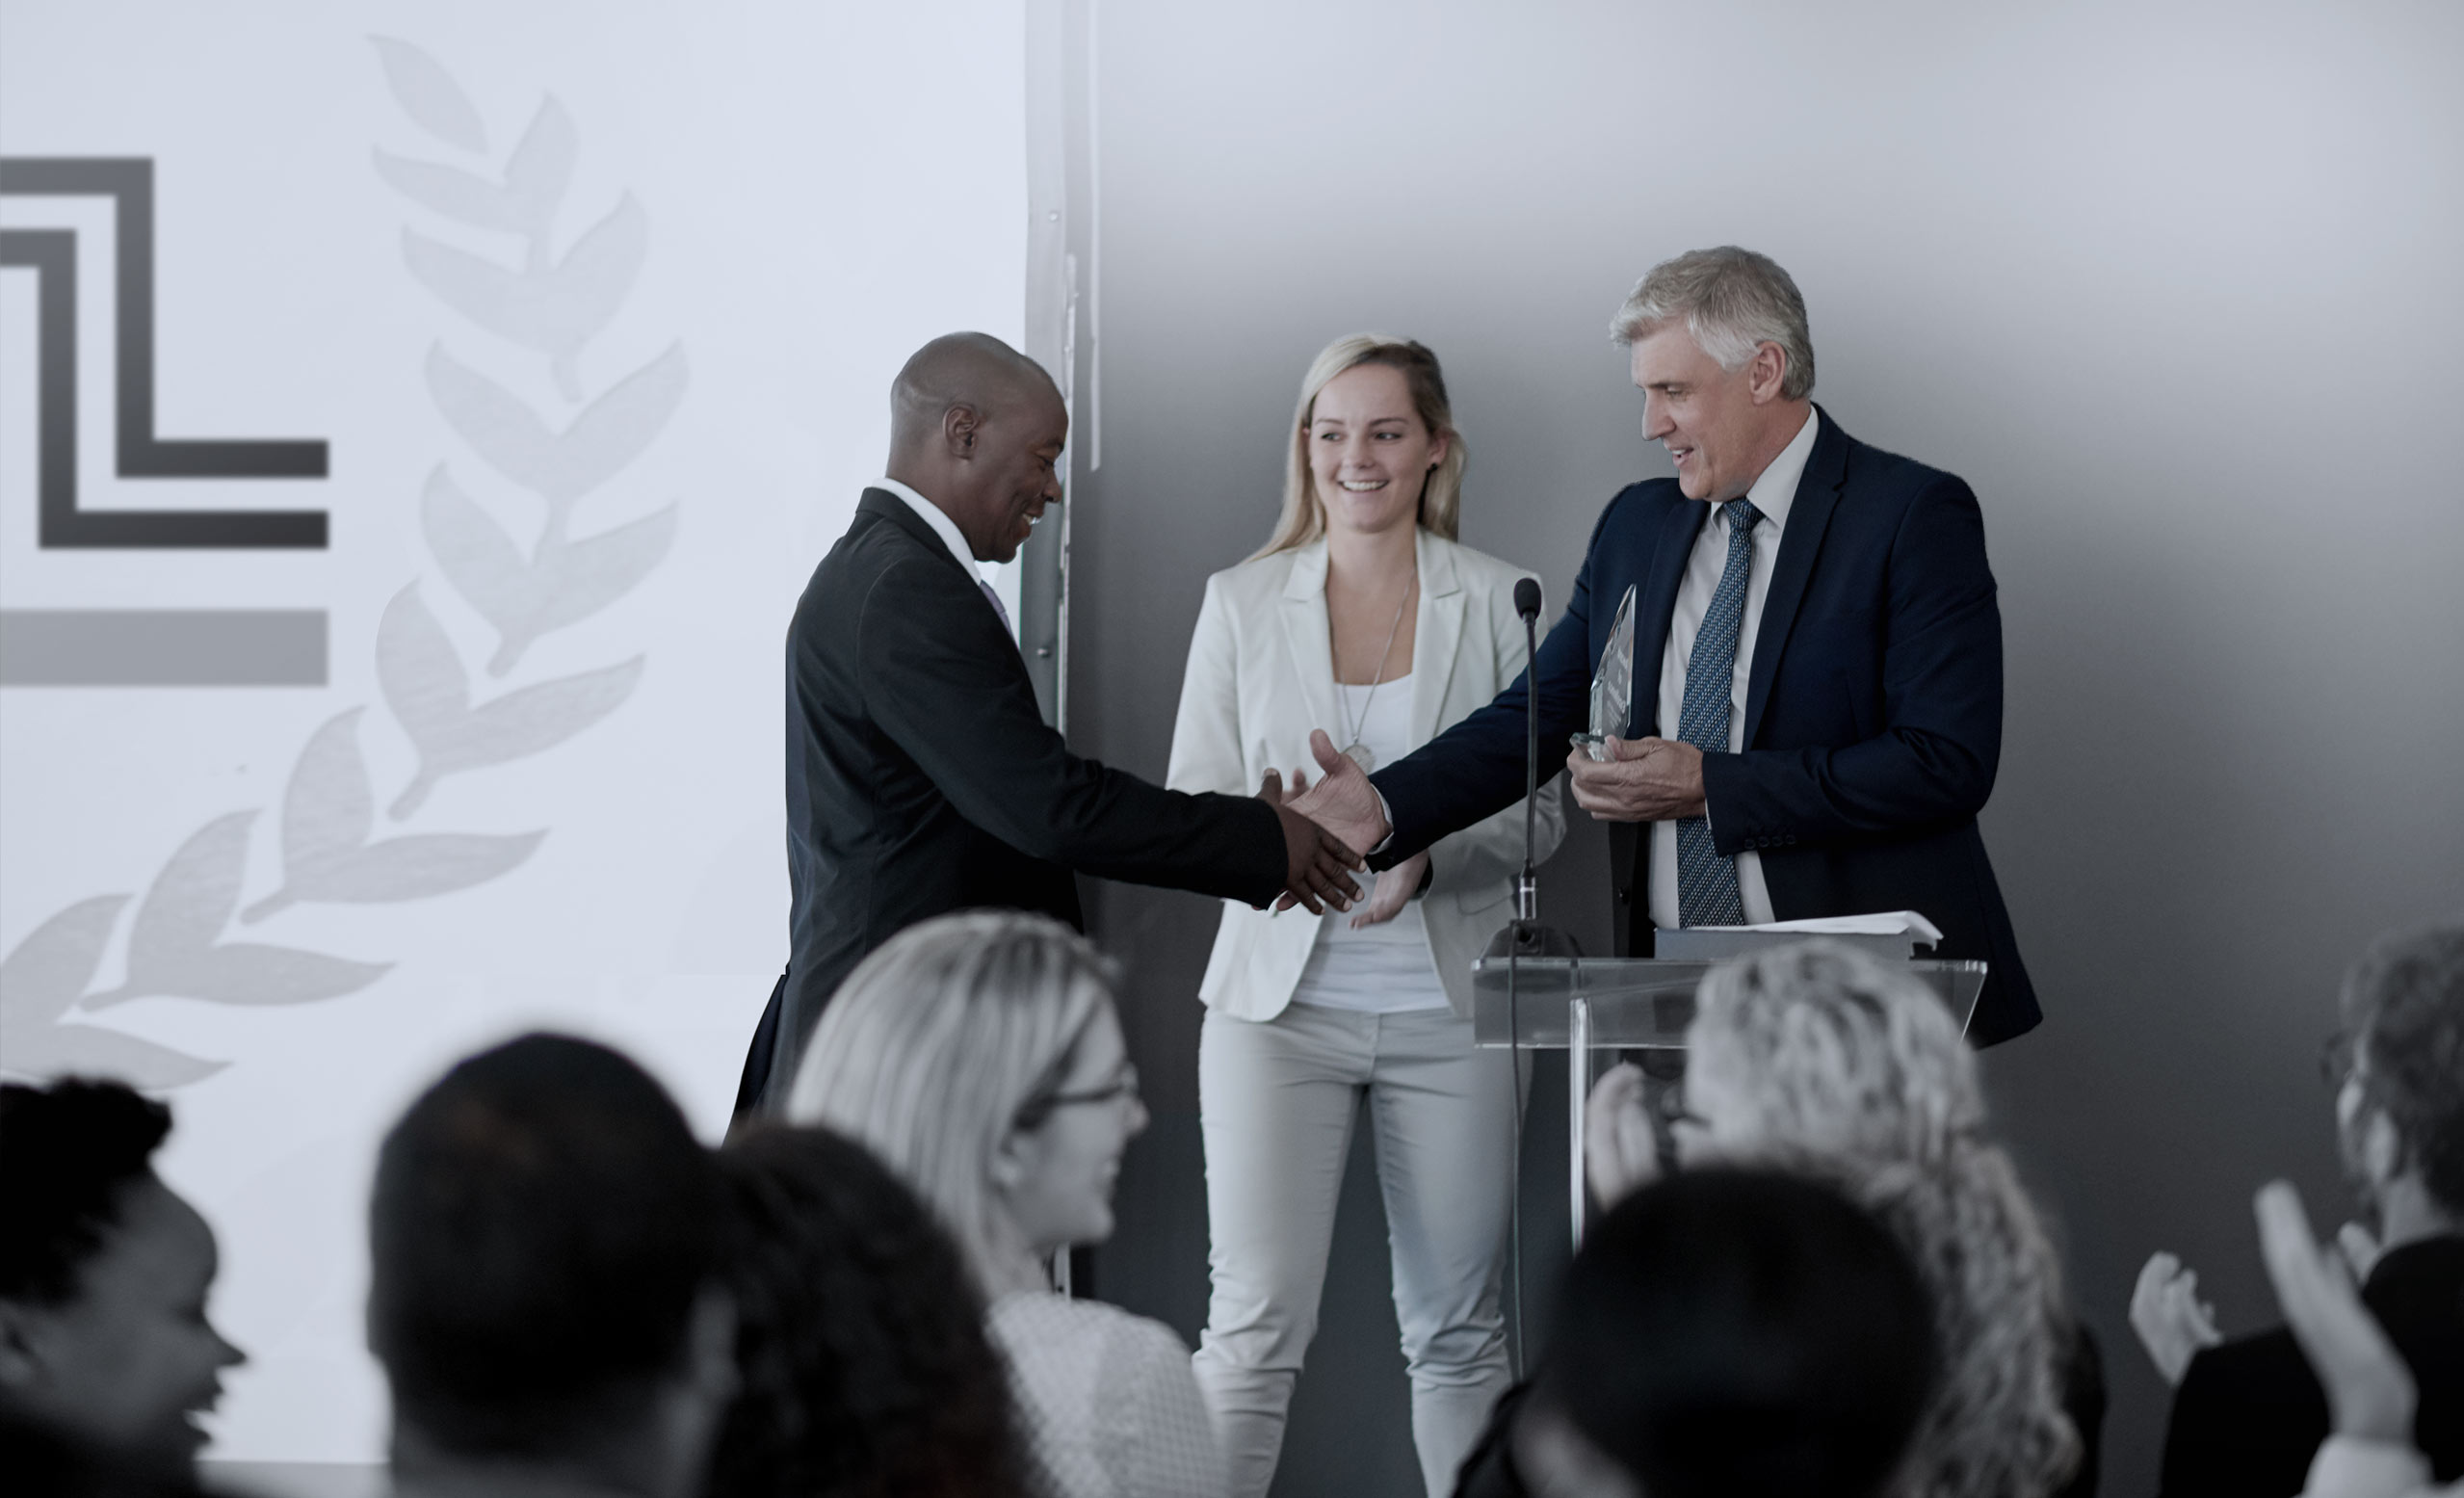 Business person receiving an award at a business conference